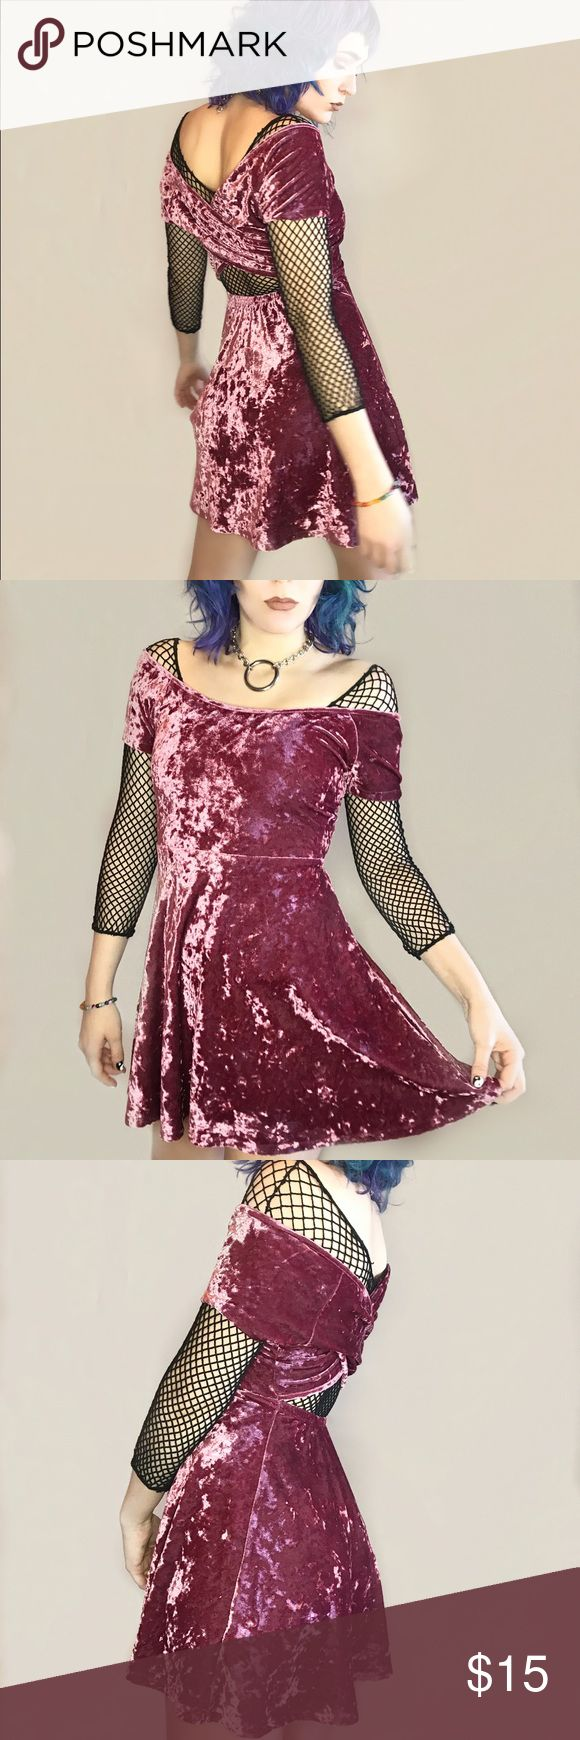 """Mauve pink crushed velvet dress Soft as a cloud of cotton candy. Cross back with opening. Elastic waist for comfort. Circle skirt for dancing all night long. Size small Bust 32"""" Waist: 24-26 Hip: 36"""" Dresses Mini"""